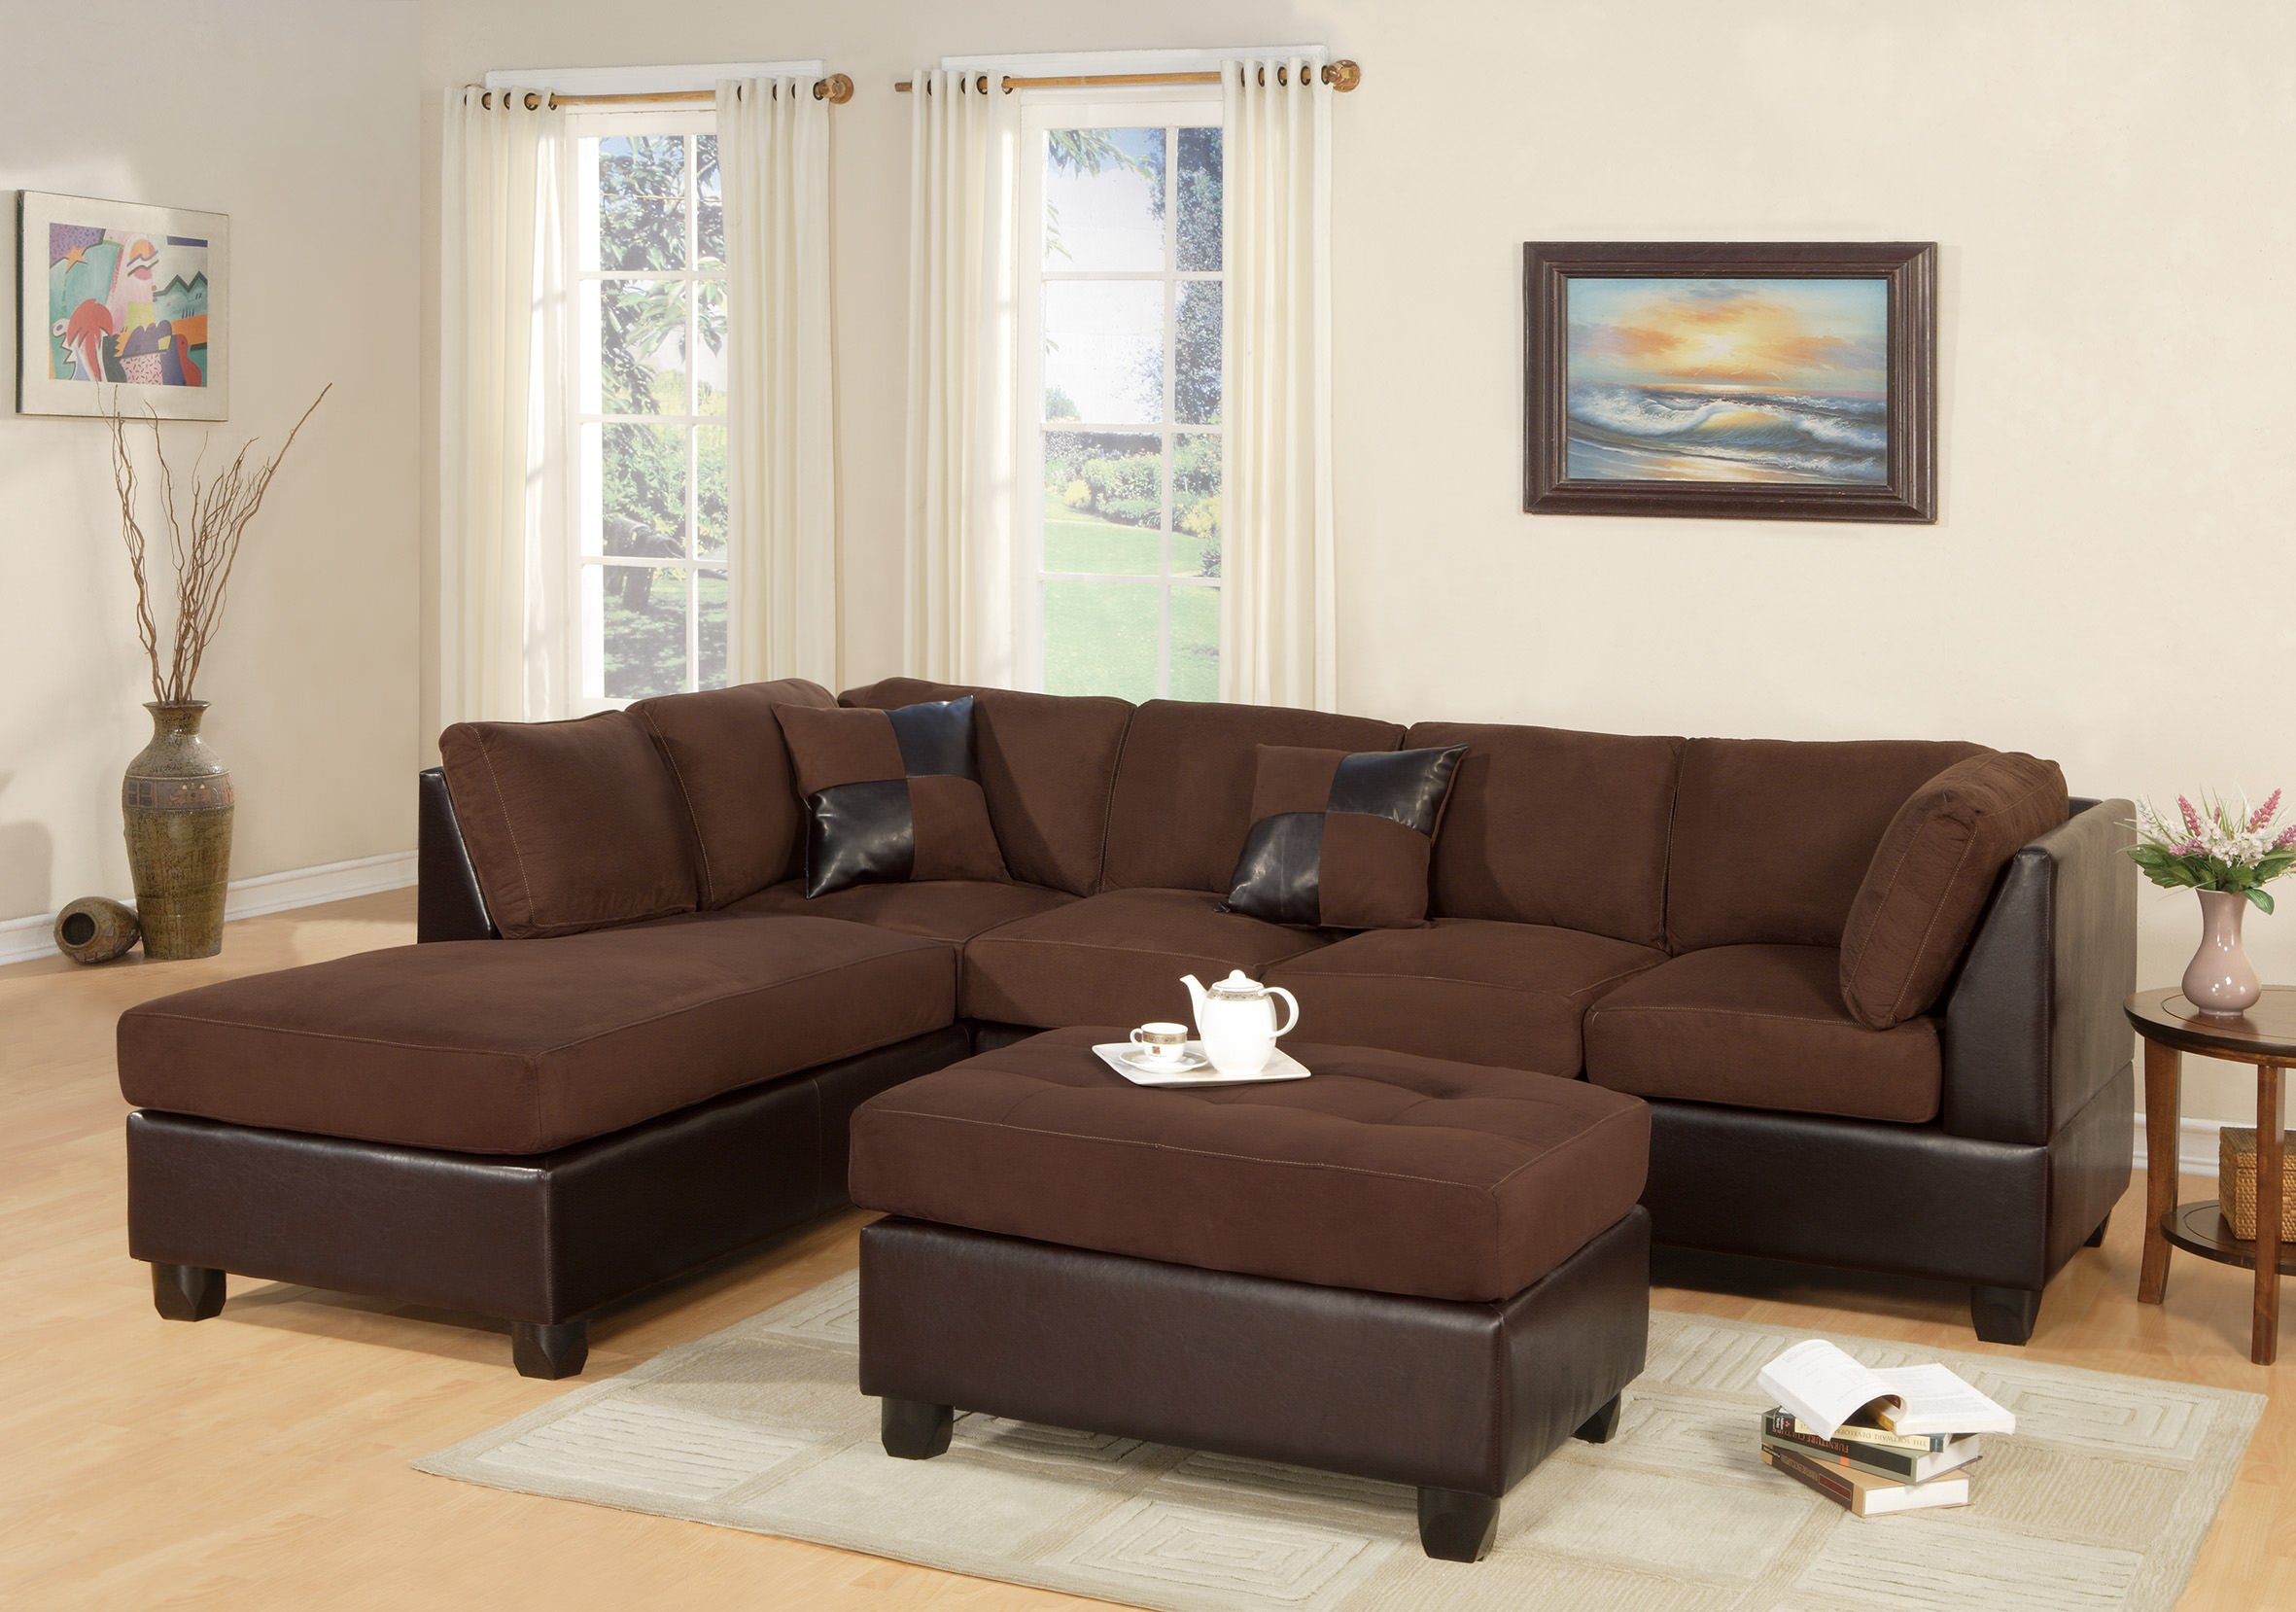 Strange F7615 Chocolate 2 Pcs Sectional Sofa Set By Poundex Inzonedesignstudio Interior Chair Design Inzonedesignstudiocom